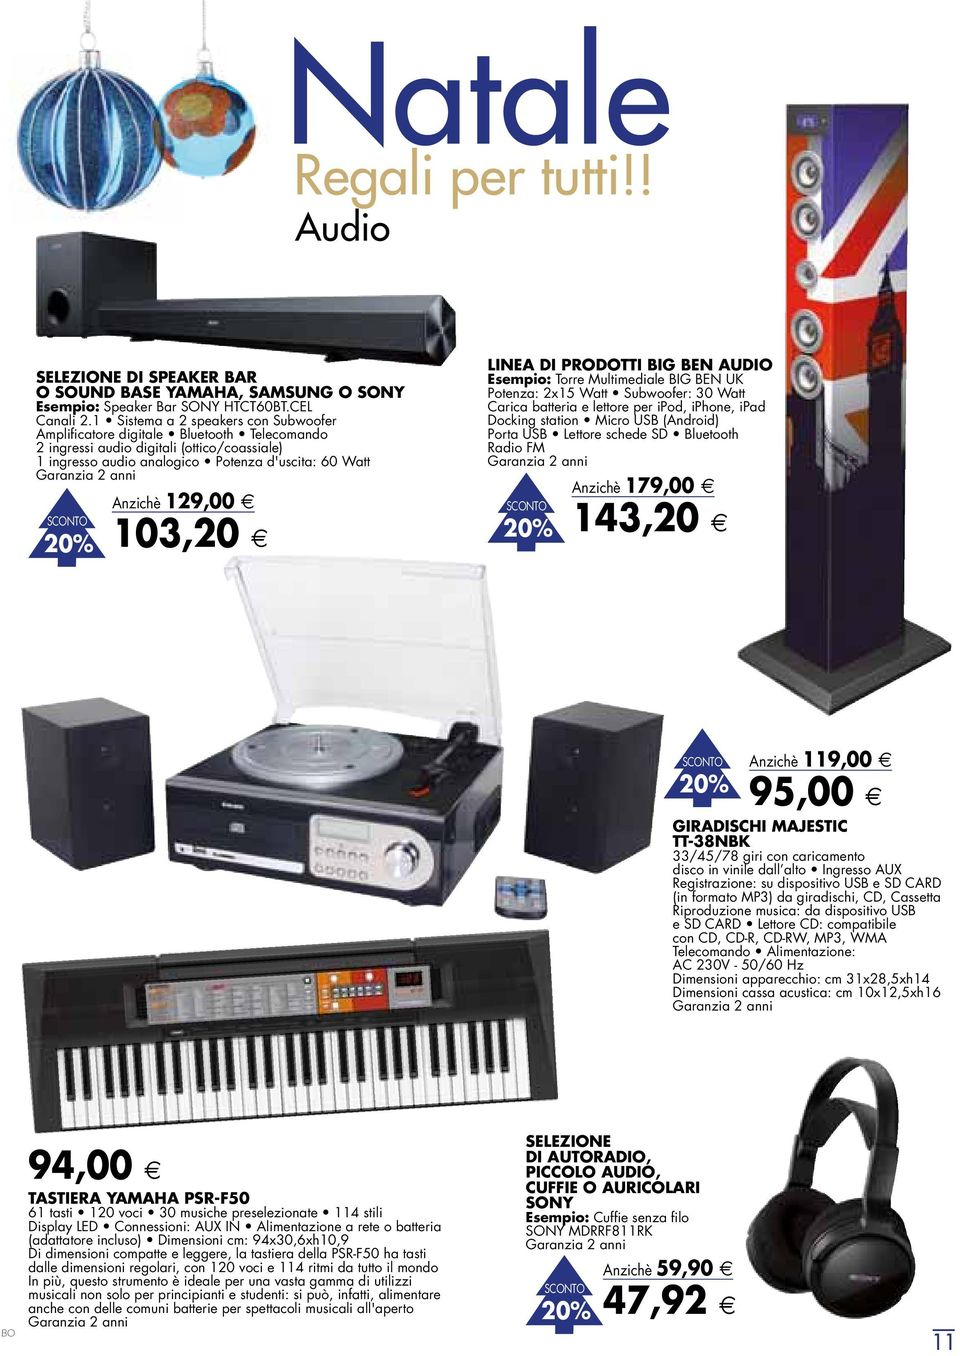 00 103, 20 LINEA DI PRODOTTI BIG BEN AUDIO Esempio: Torre Multimediale BIG BEN UK Potenza: 2x15 Watt Subwoofer: 30 Watt Carica batteria e lettore per ipod, iphone, ipad Docking station Micro USB